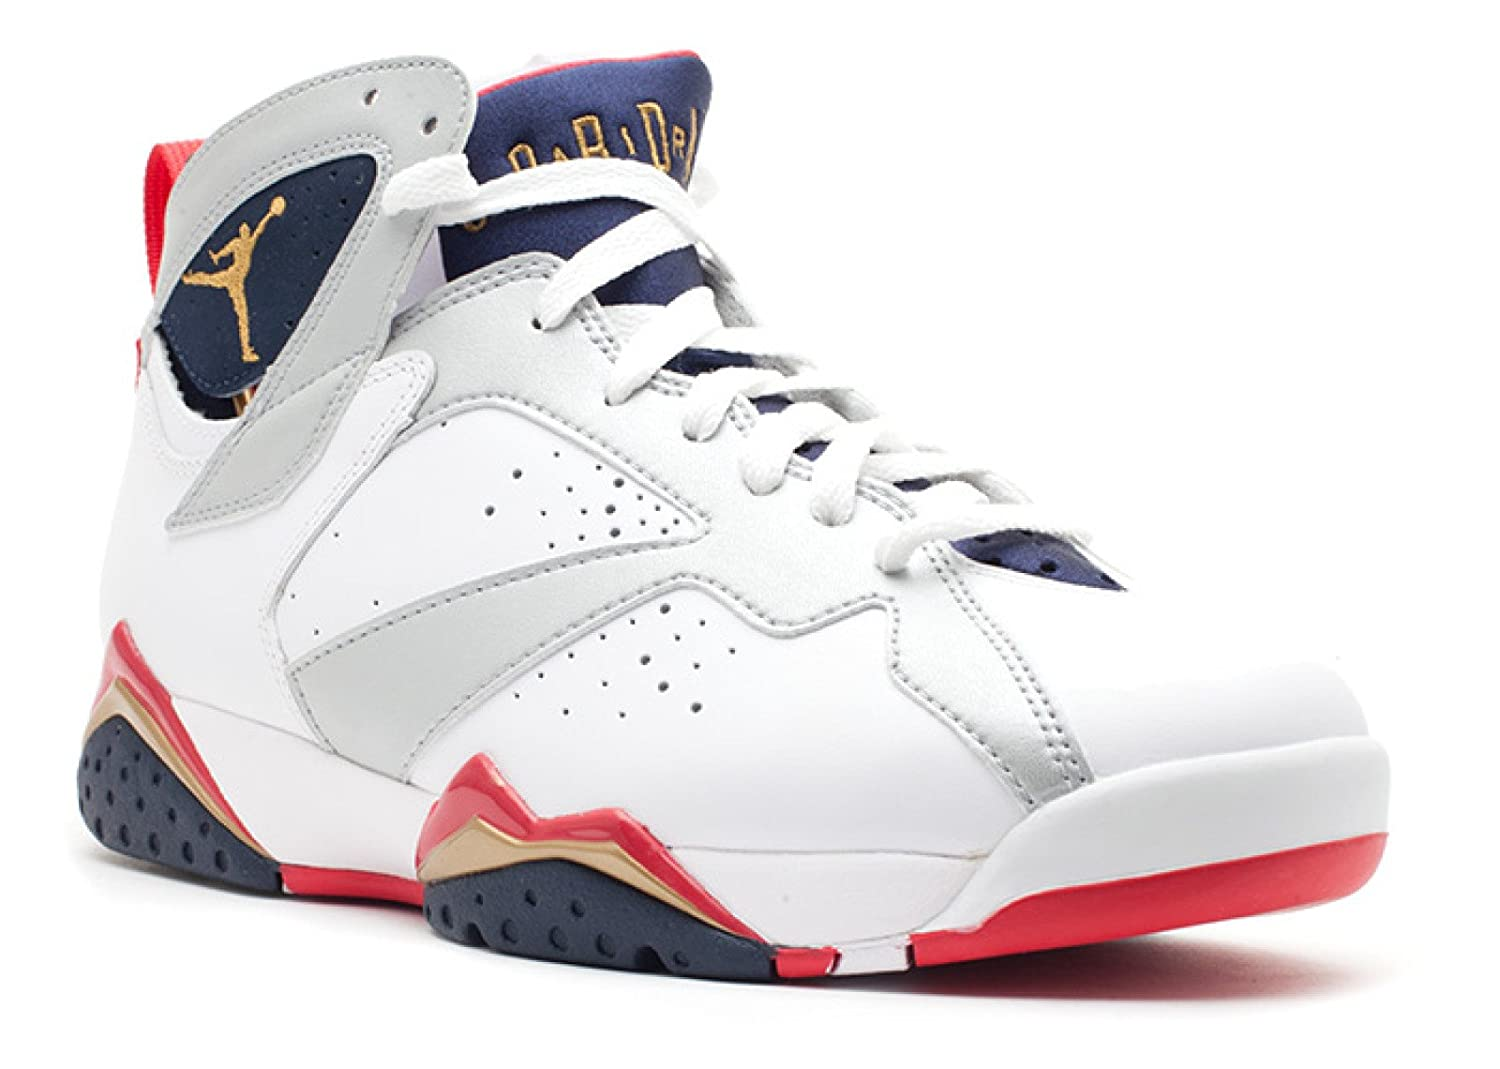 best sneakers 7fc02 bca48 Nike Air Jordan 7 Retro Olympic (304775-135) Mens Shoes